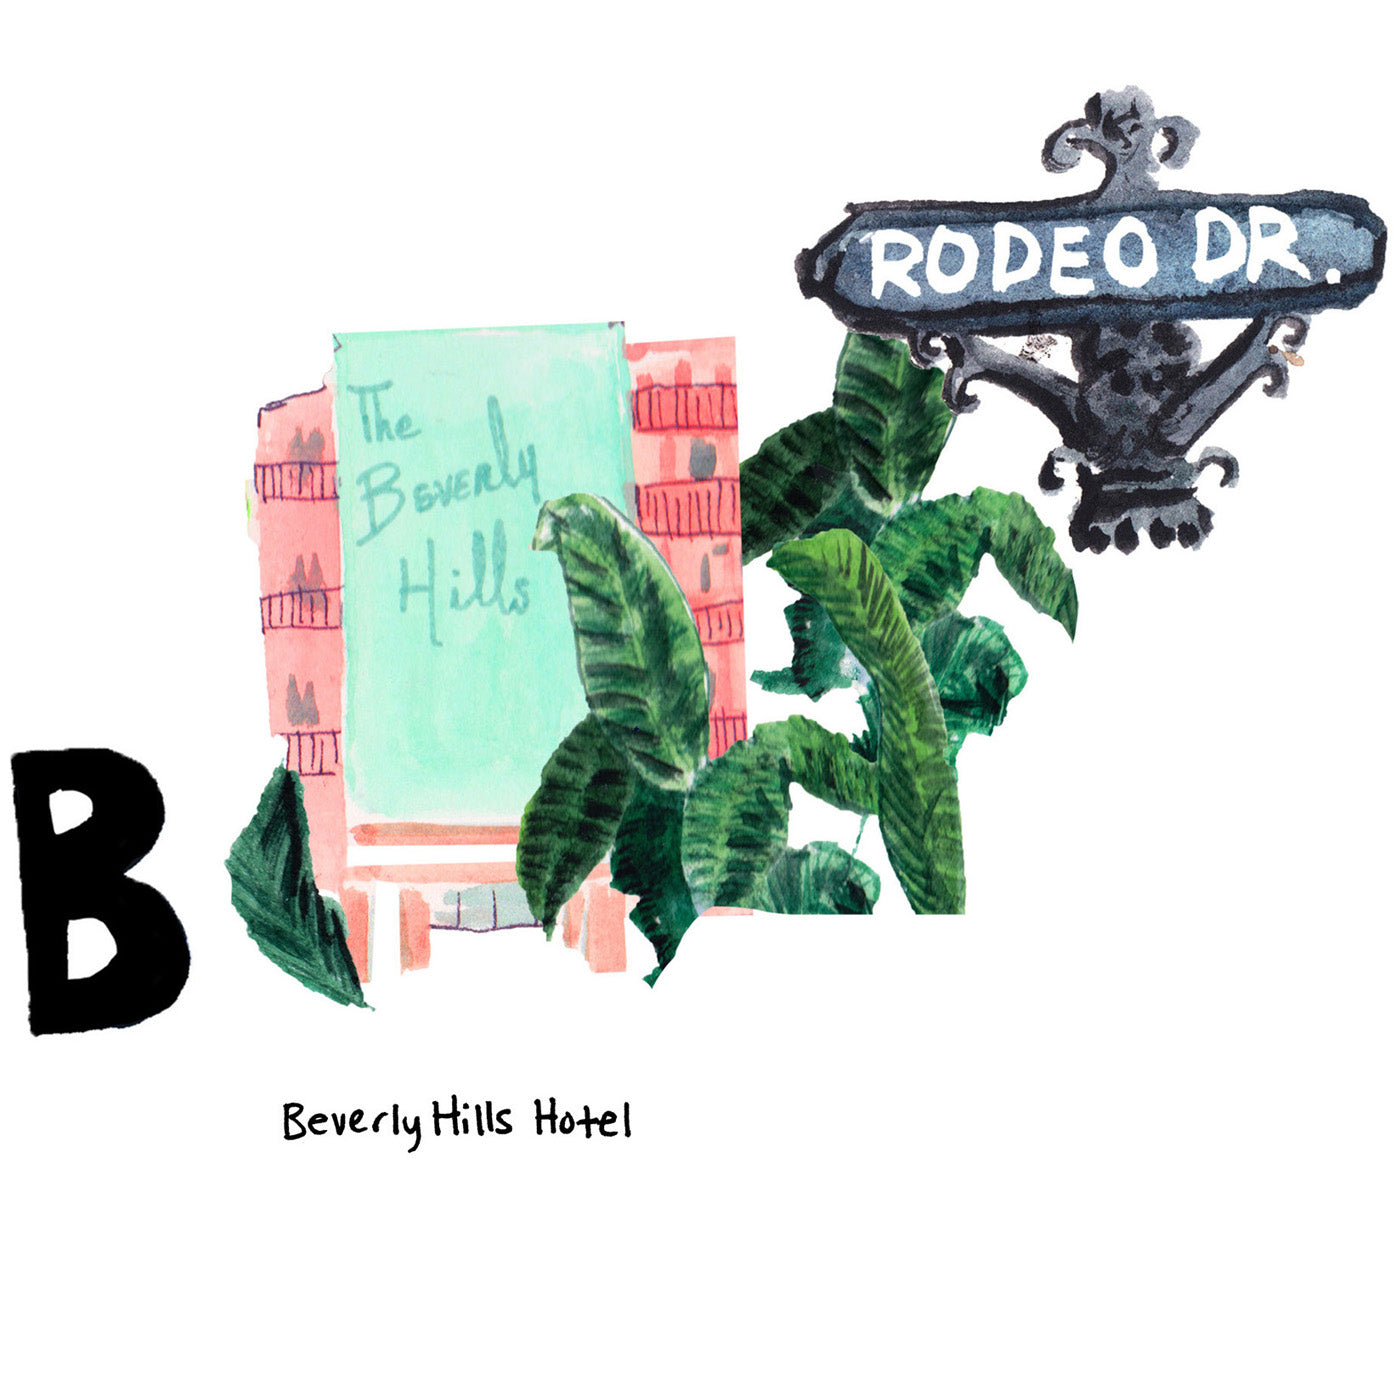 B is for Beverly Hills Hotel. Since its opening in 1912, the Beverly Hills Hotel has been one of the most famous hotels in the world regularly hosting celebrities, actors and well heeled jetsetters.